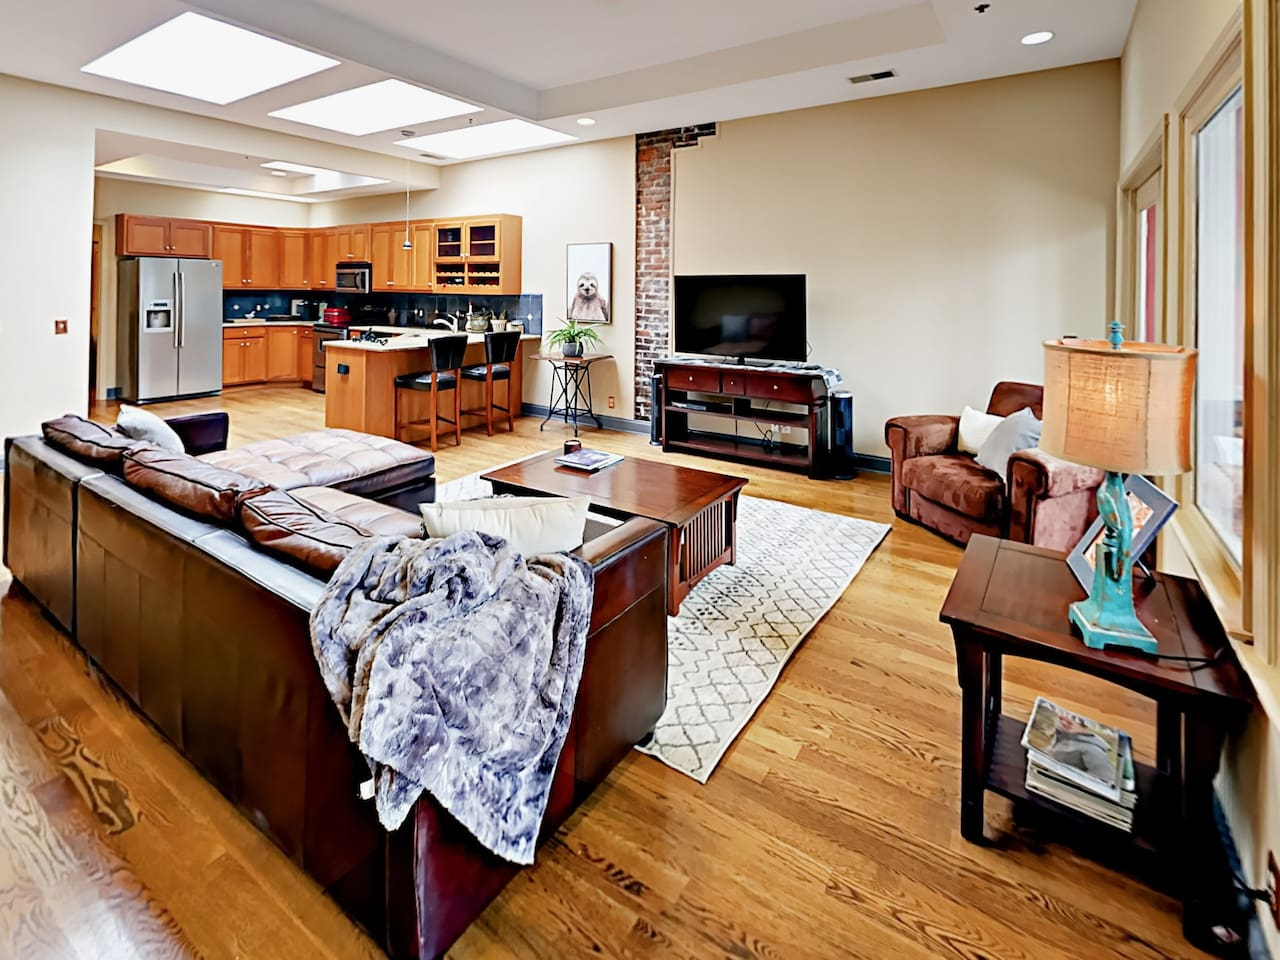 The open living and kitchen space offers a great flow for entertaining.